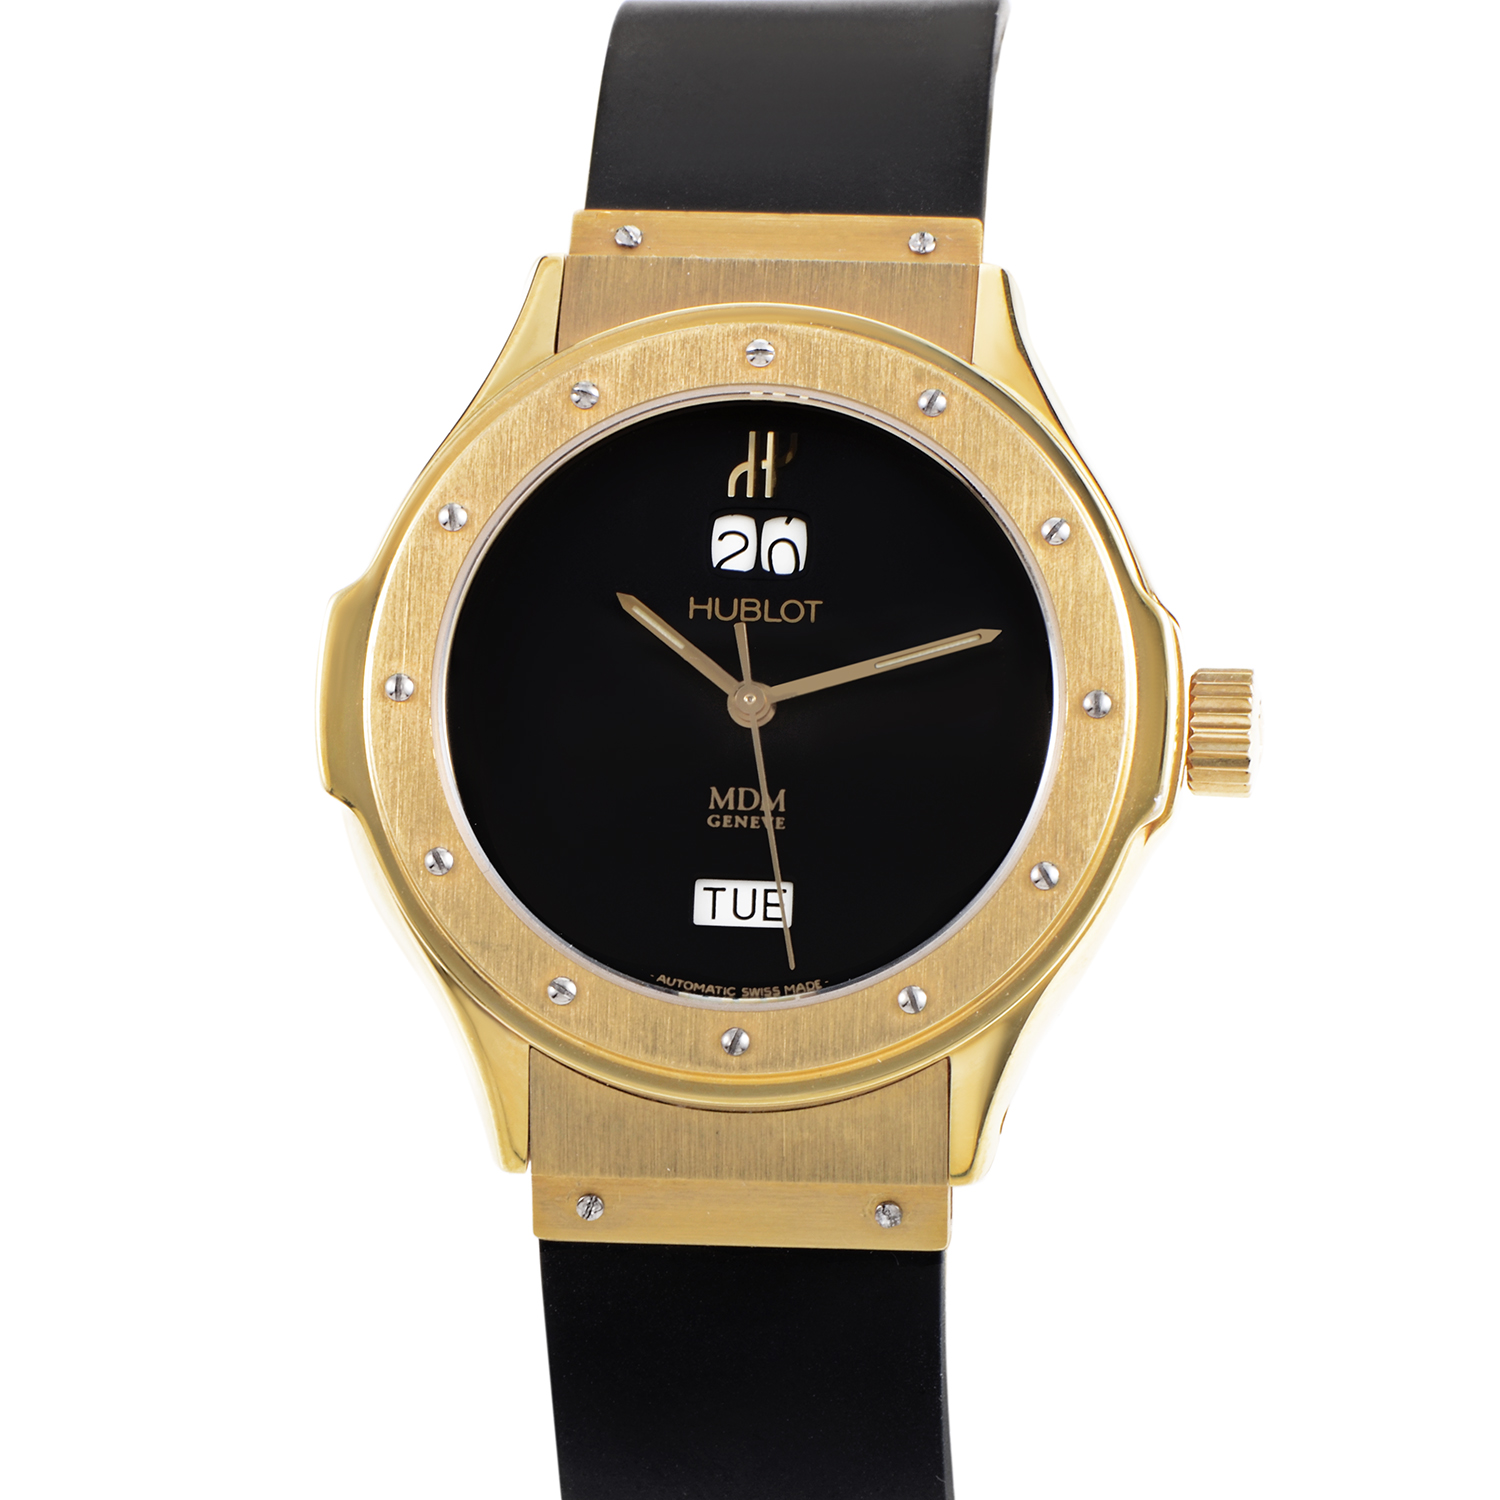 Classic Men's Yellow Gold Automatic Watch 105.405.47-0011